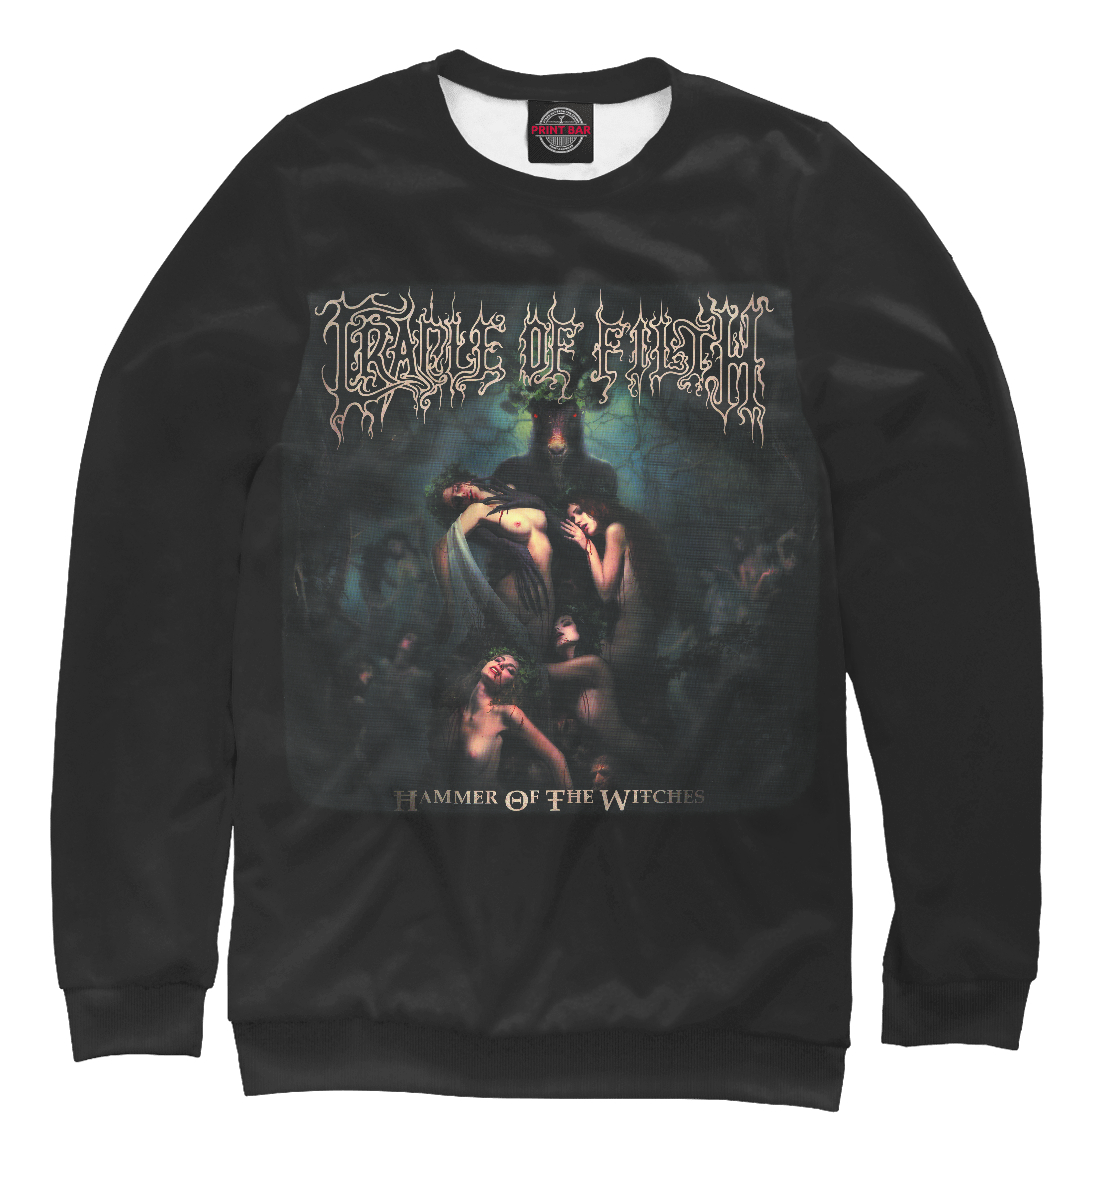 Купить Cradle of Filth: Hammer of the Witches, Printbar, Свитшоты, MZK-275721-swi-1